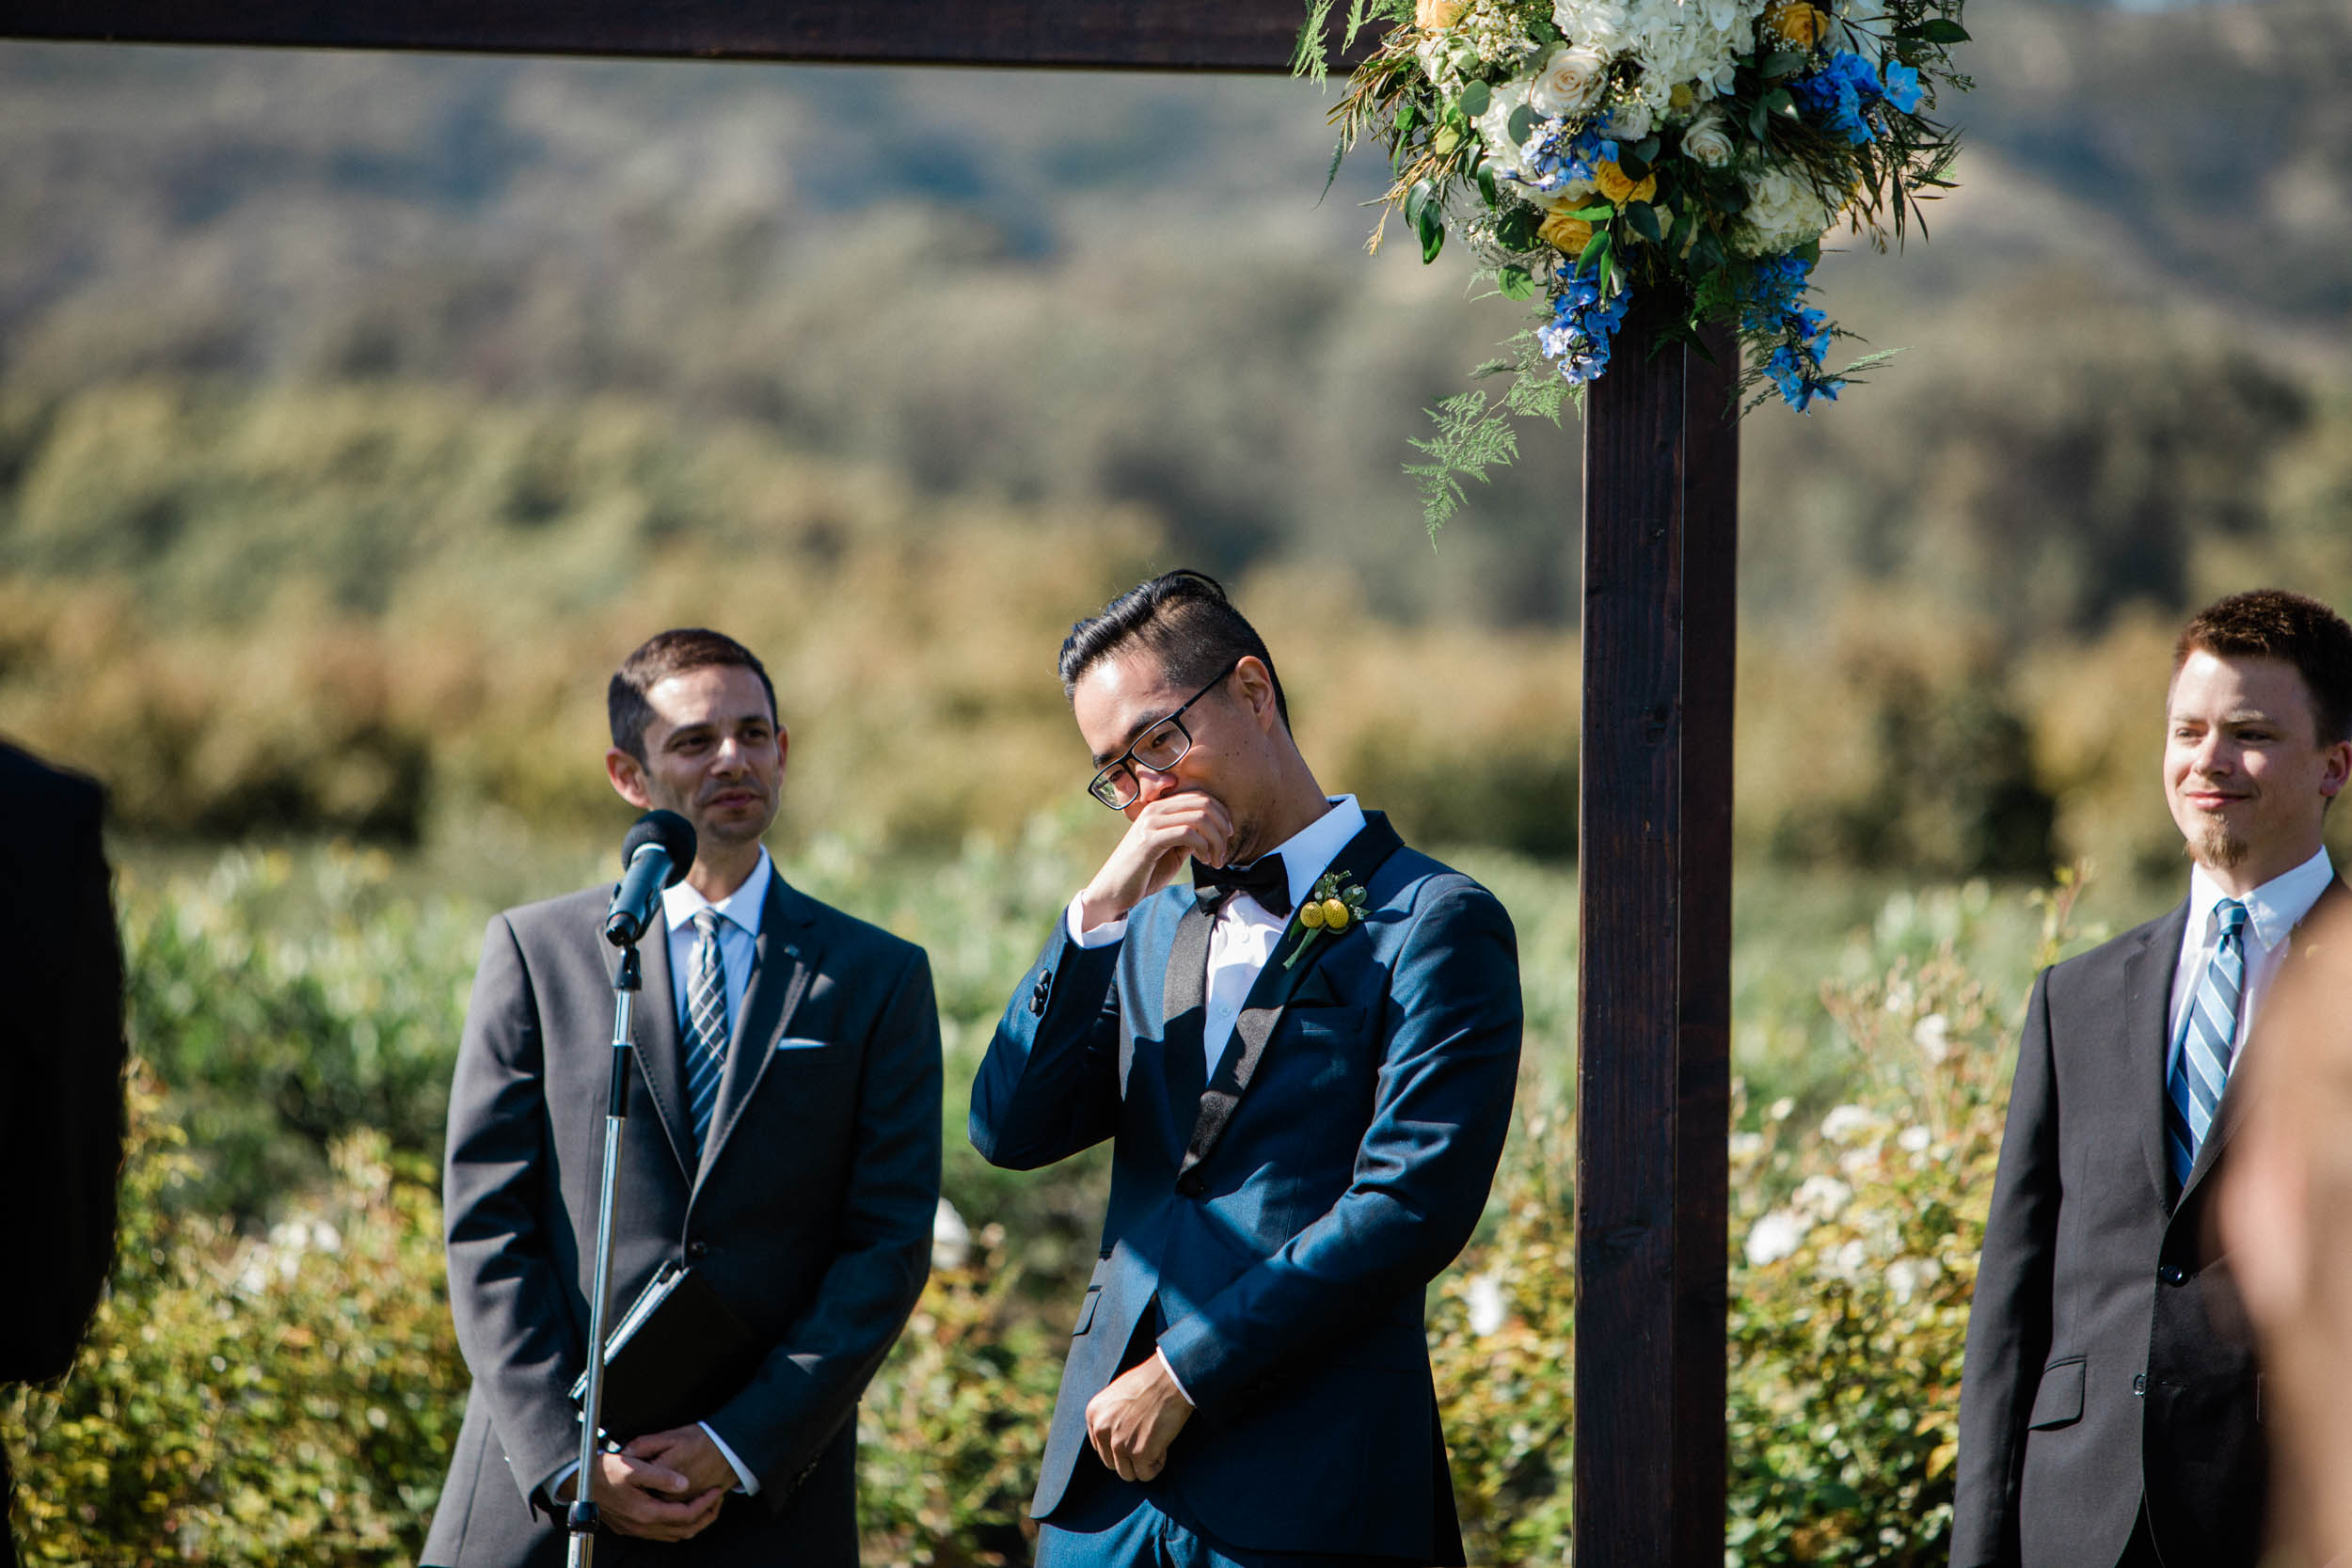 BKM-Photography-Gerry-Ranch-Southern-California-Wedding-0073.jpg